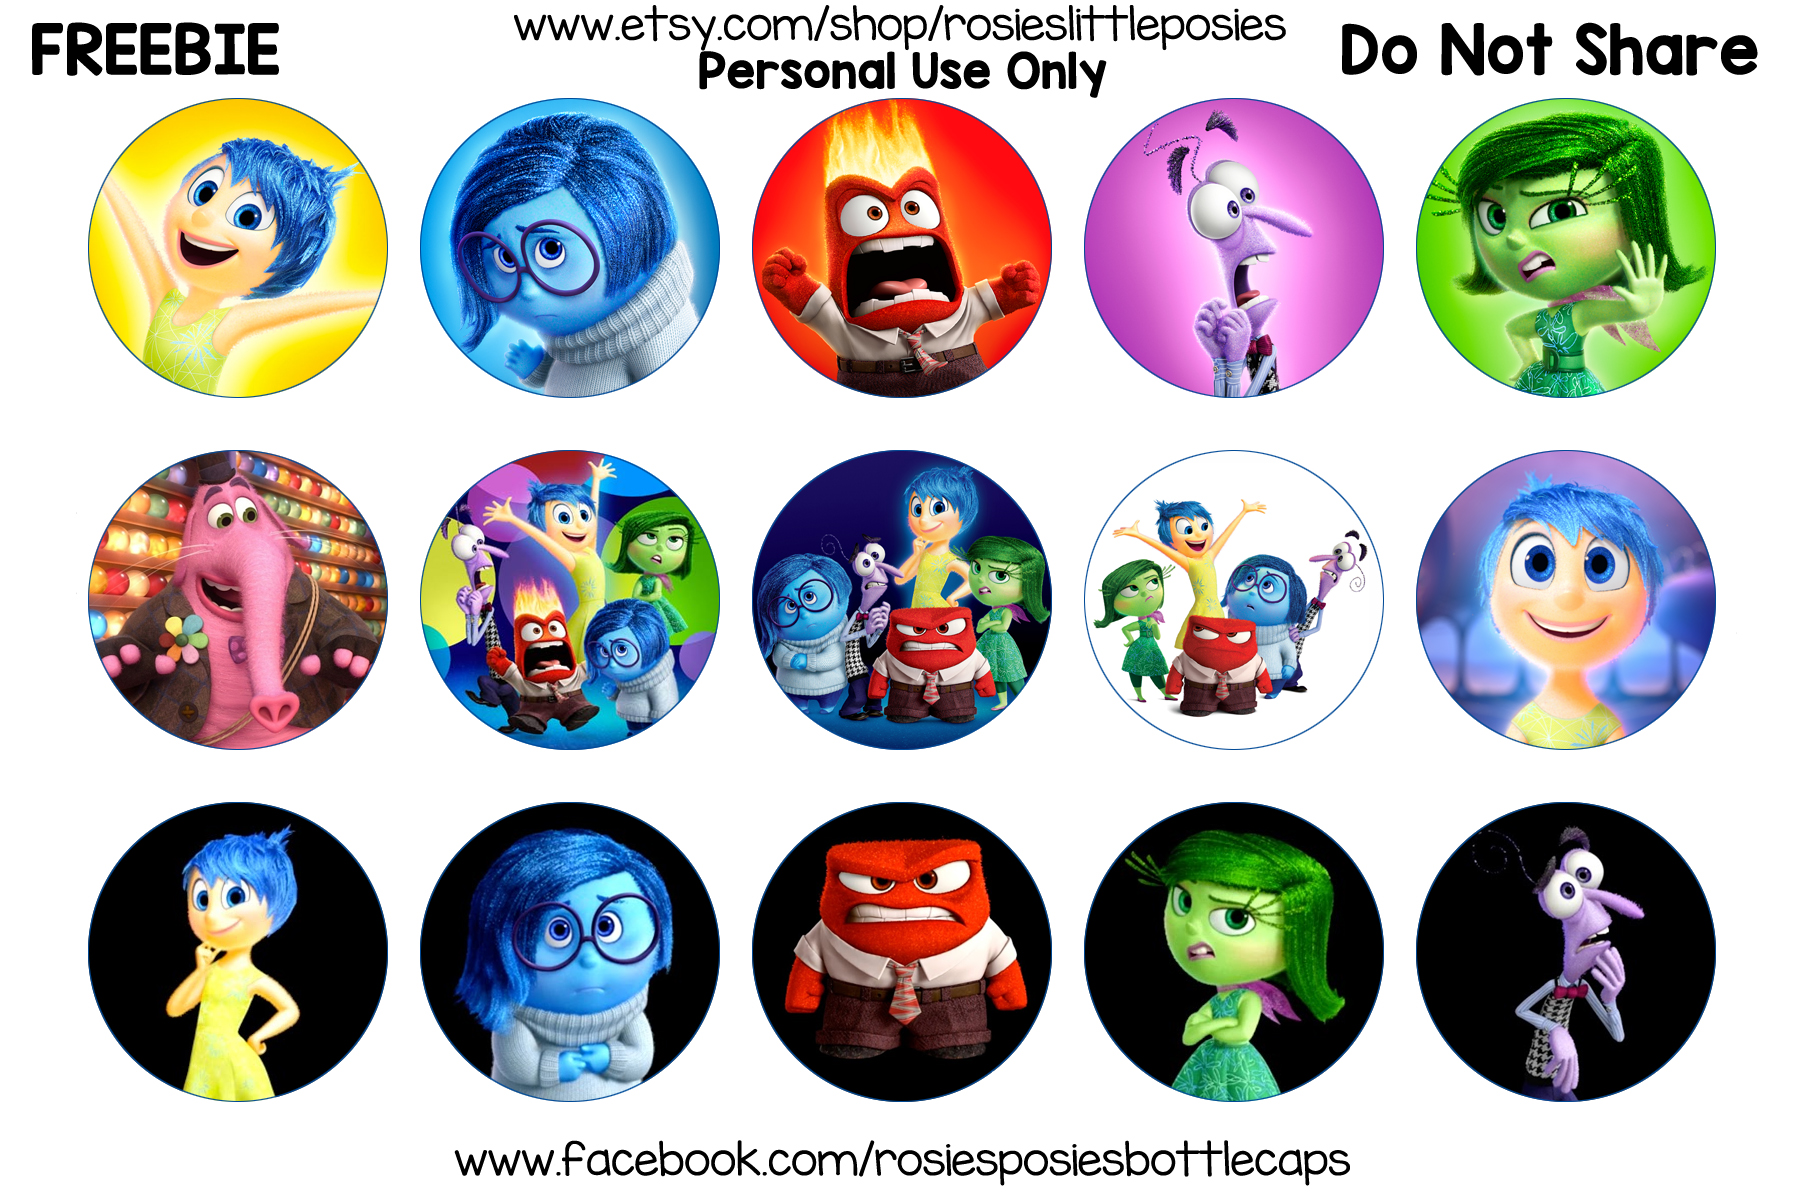 Inside clipart animated Animated collections icon character Out